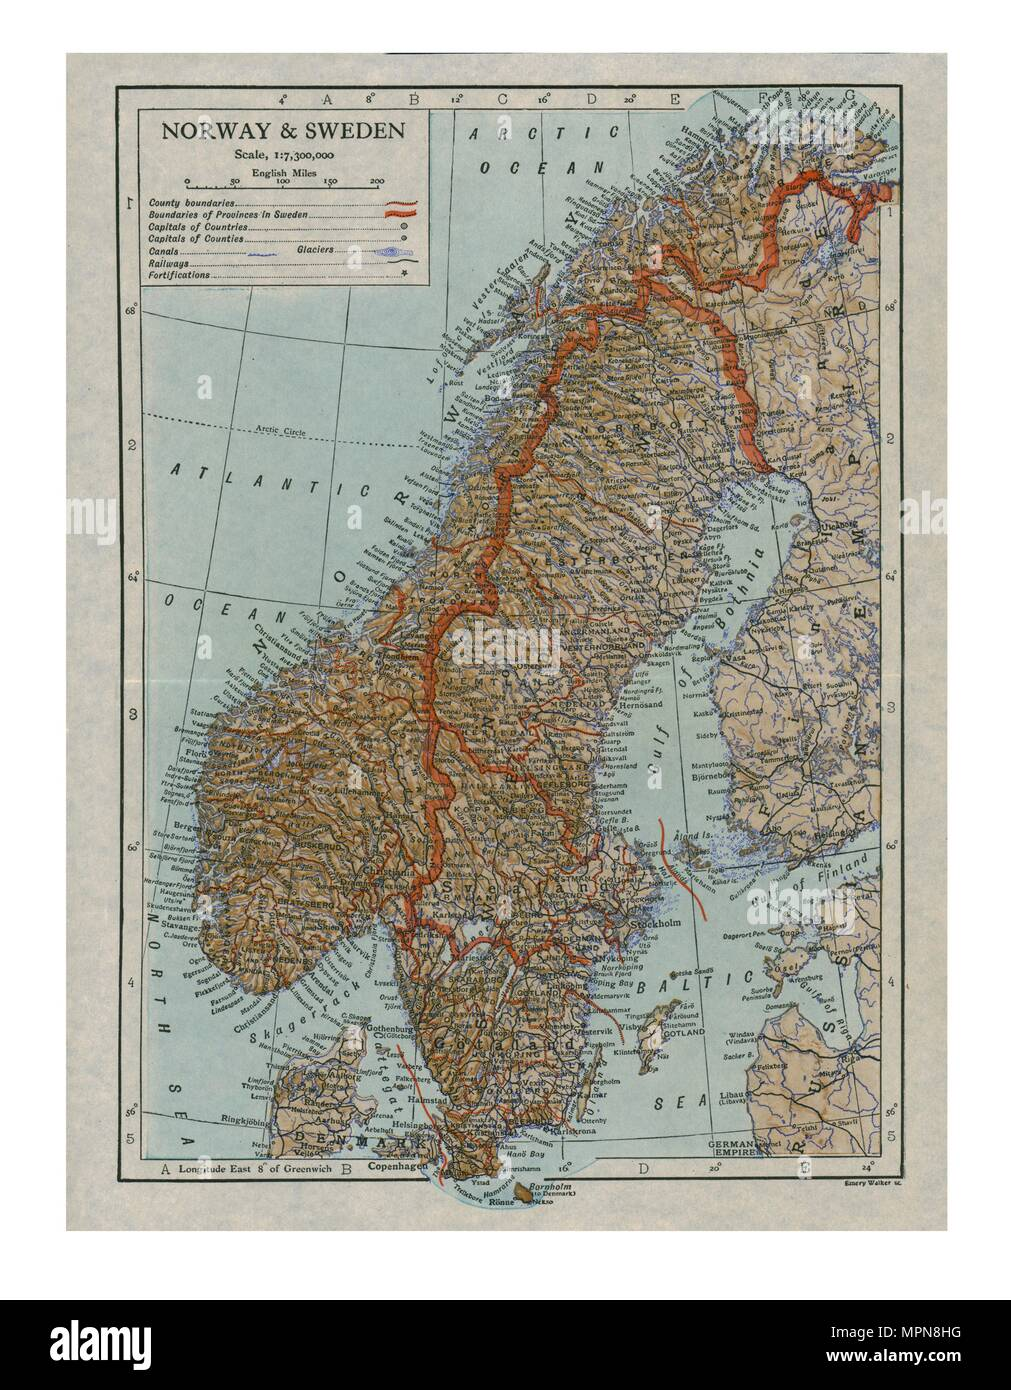 Map of Norway and Sweden, c19th century. Artist: Unknown. - Stock Image